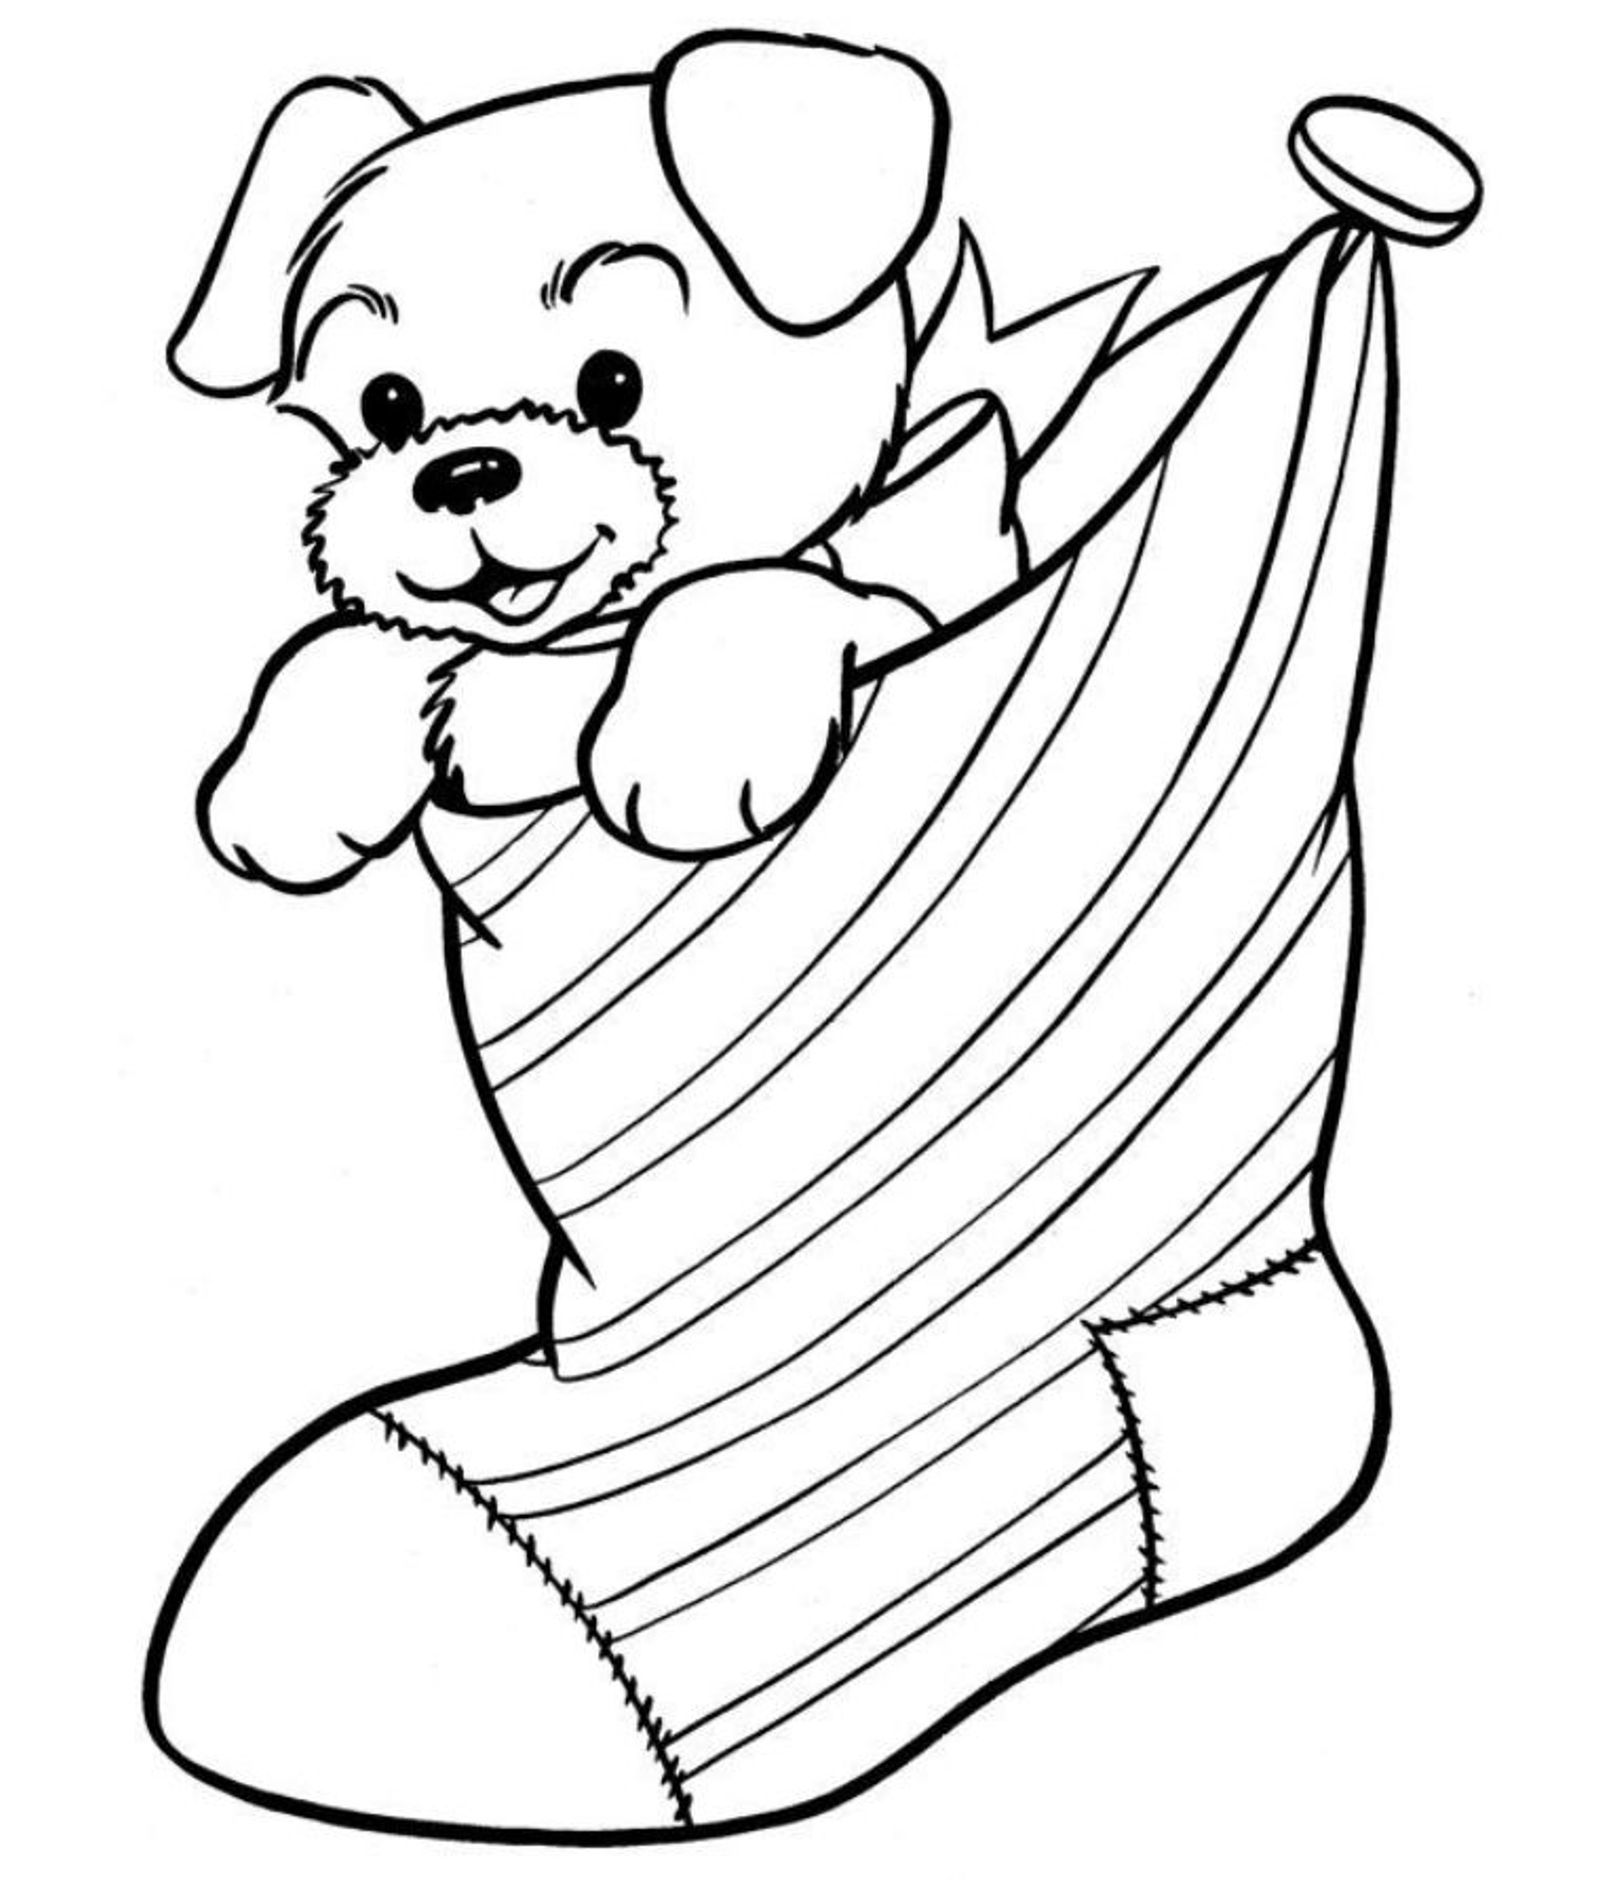 Coloring sheet for christmas - Christmas Present Coloring Sheets Presents Candle And Christmas